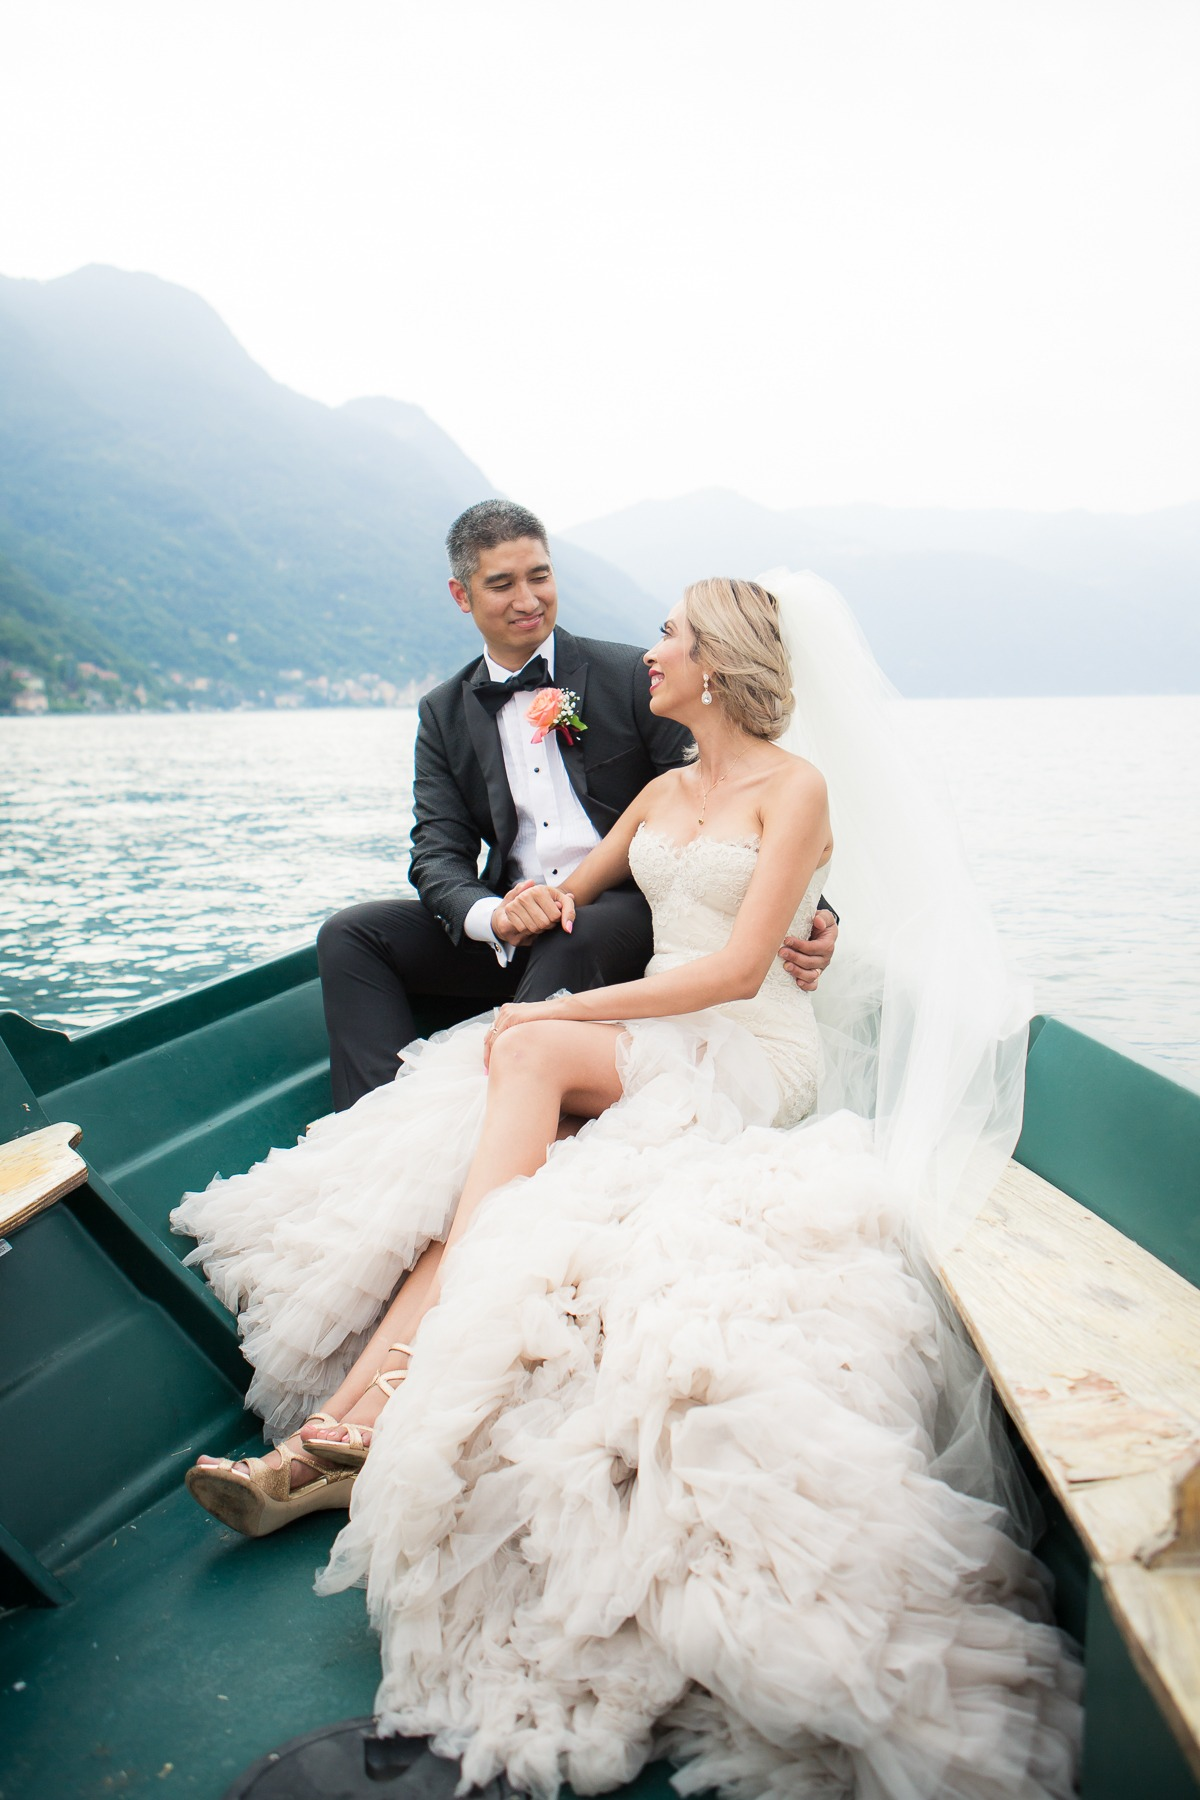 Wedding on Lake Como Italy